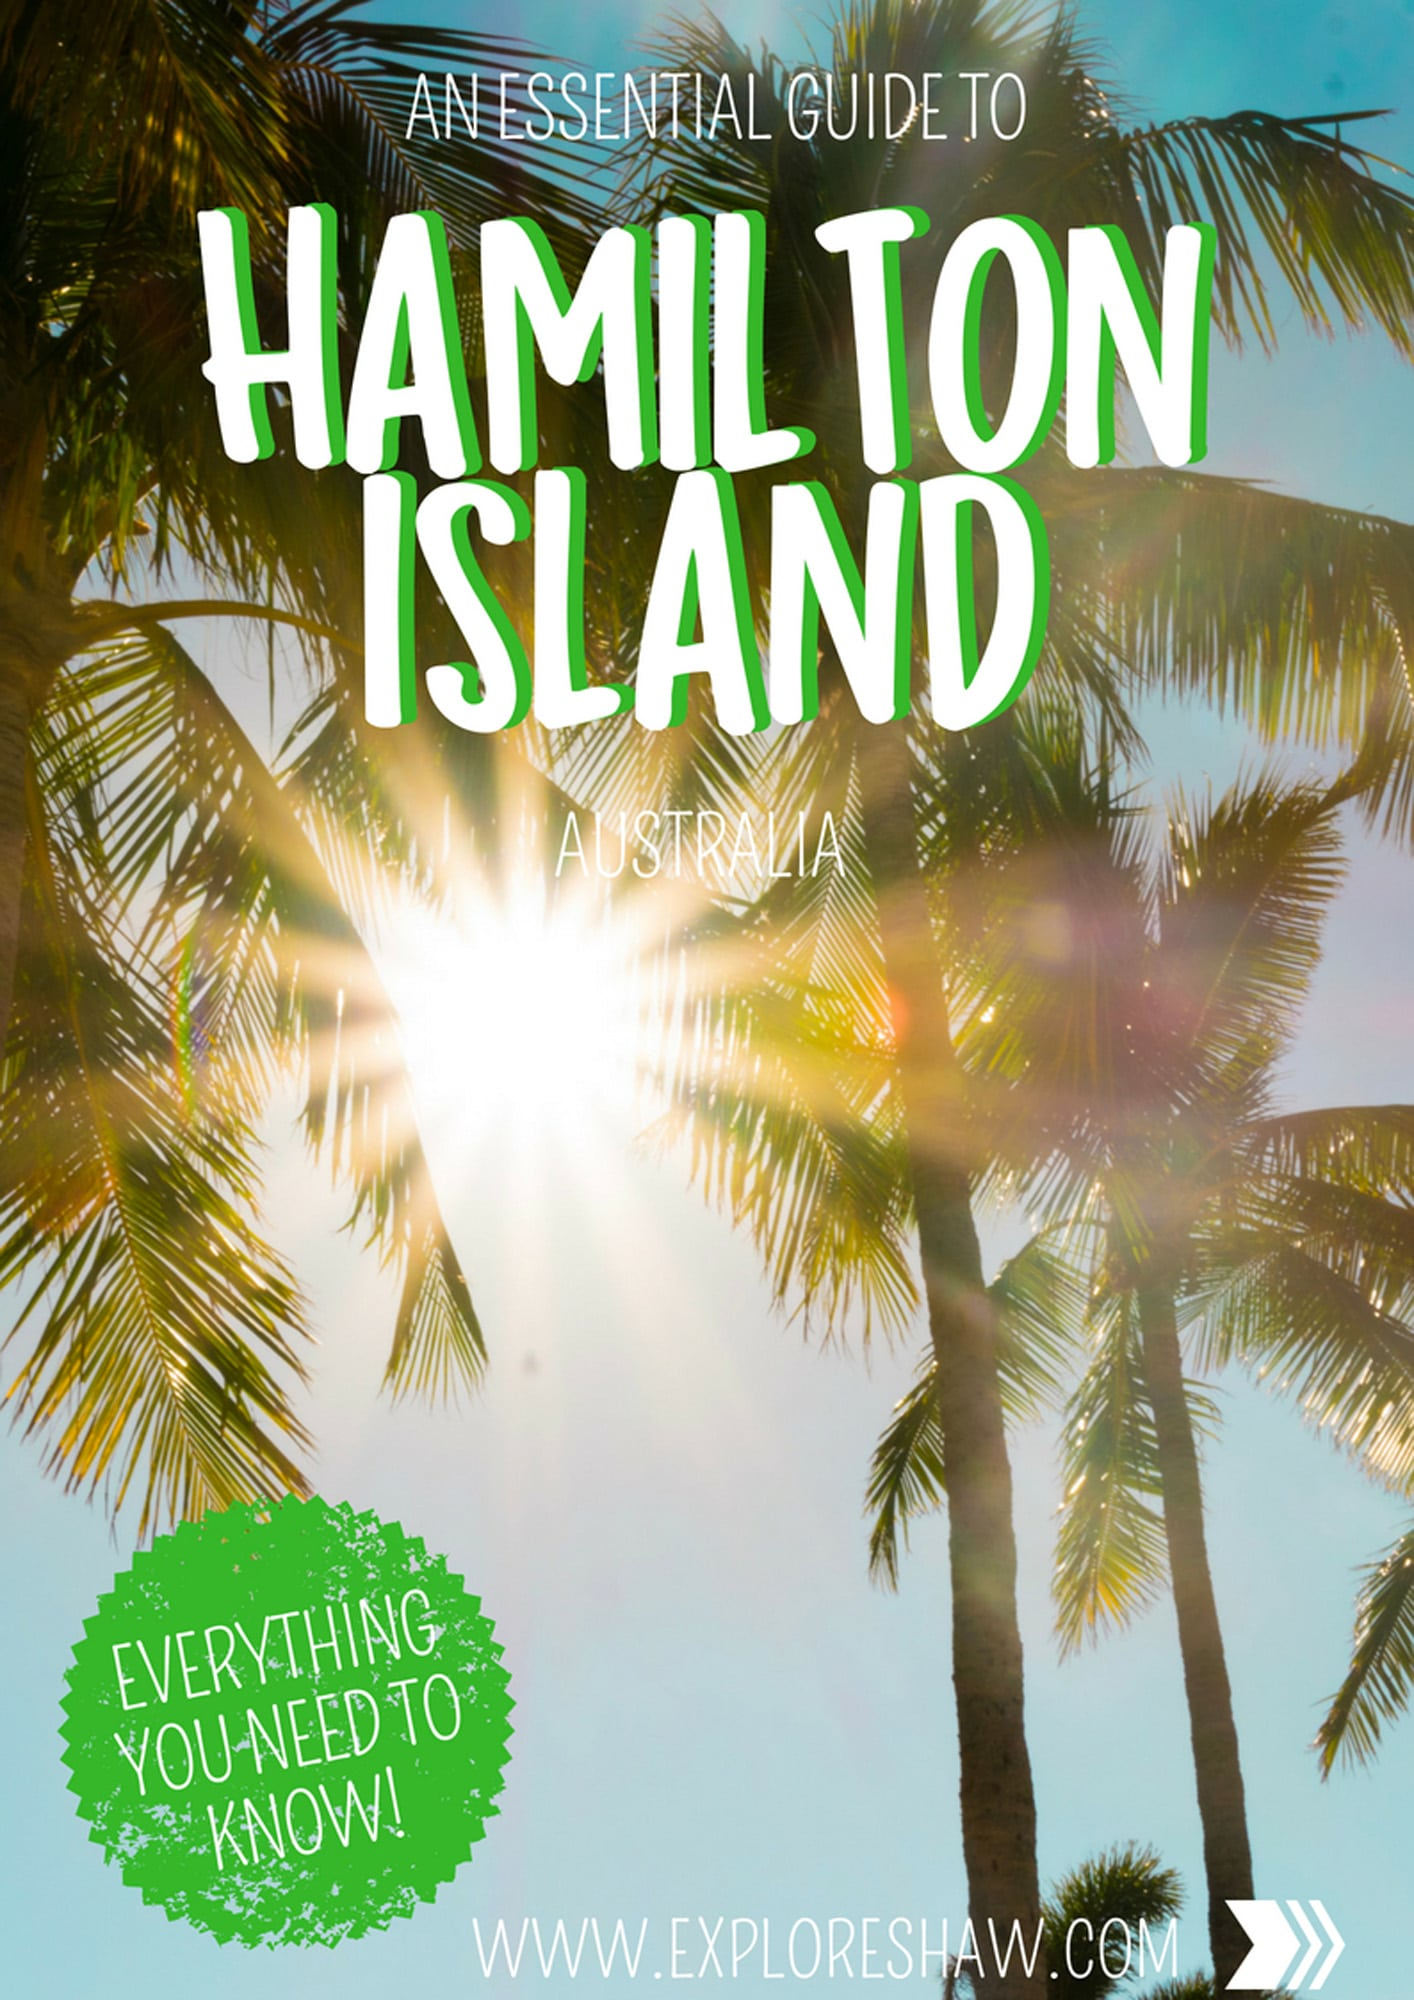 AN ESSENTIAL GUIDE TO HAMILTON ISLAND